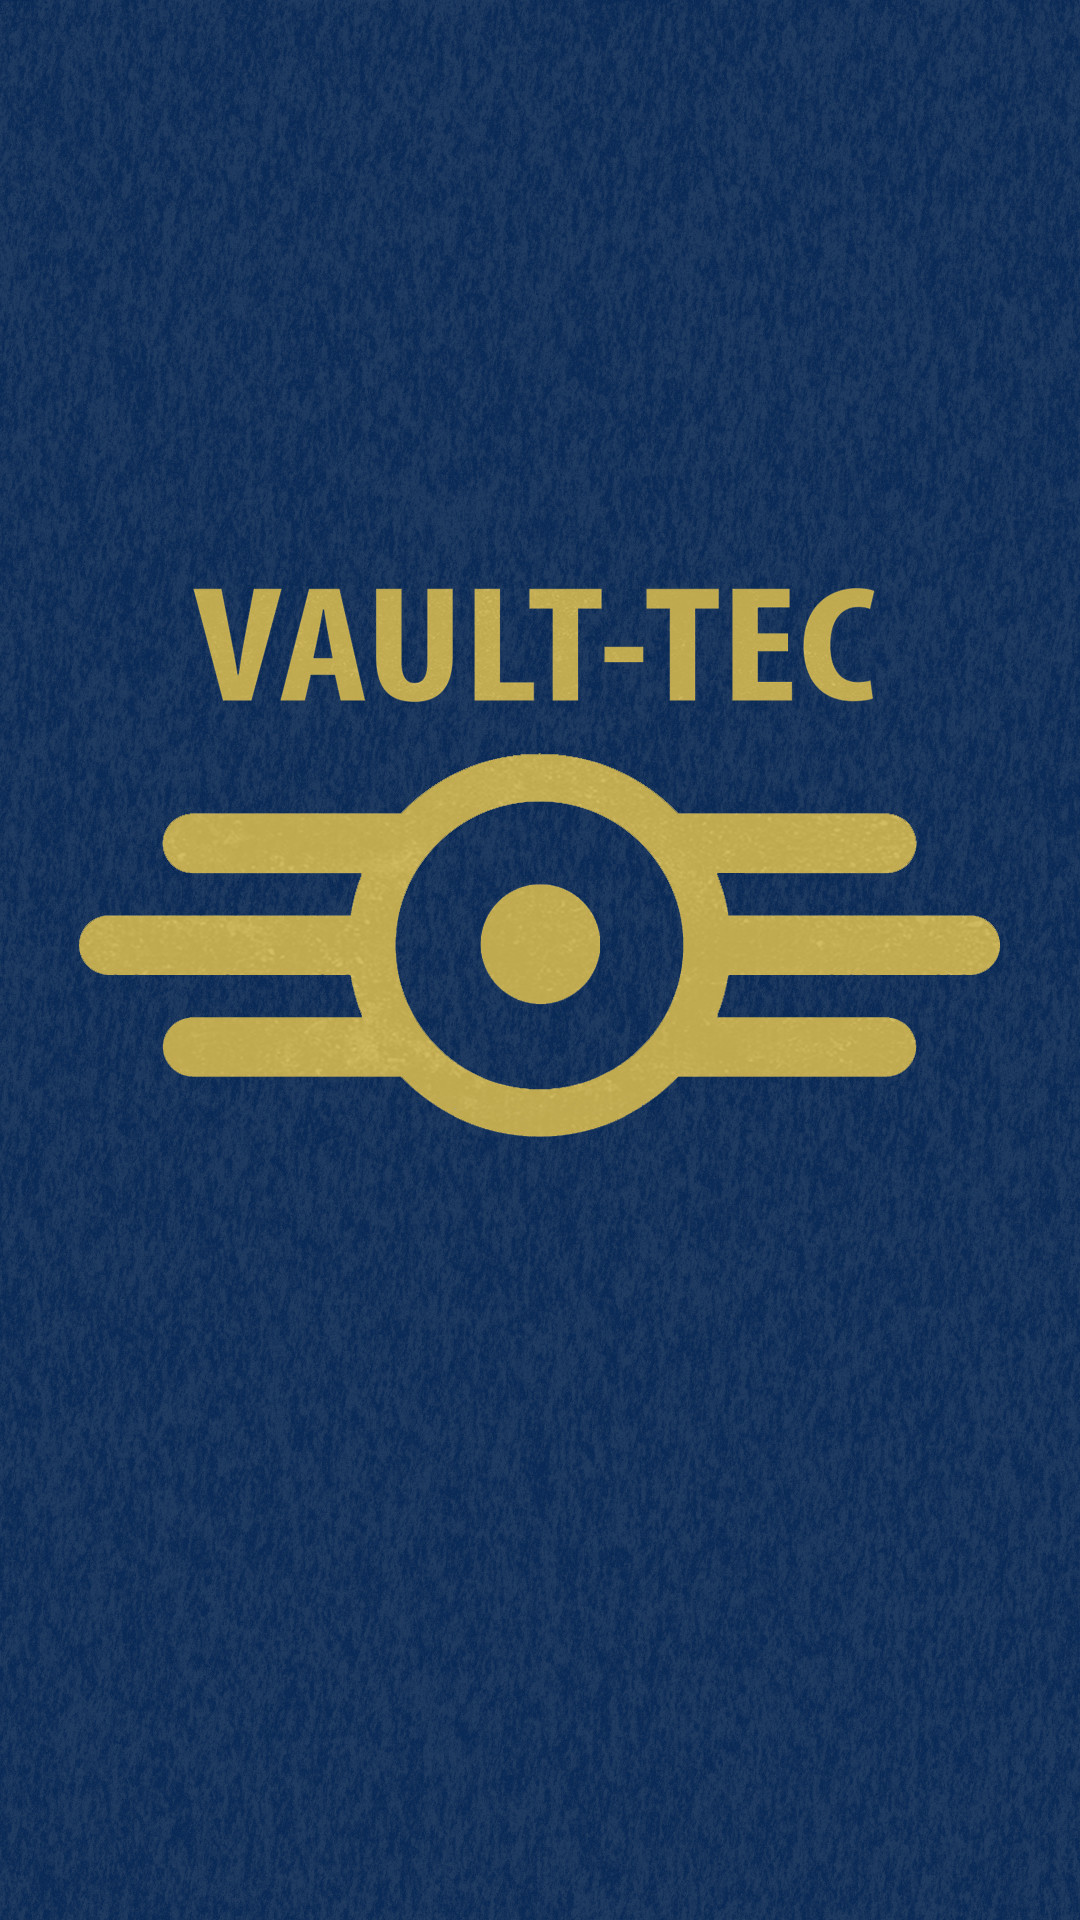 My Fallout Vault- Tec Android Setup with wallpaper